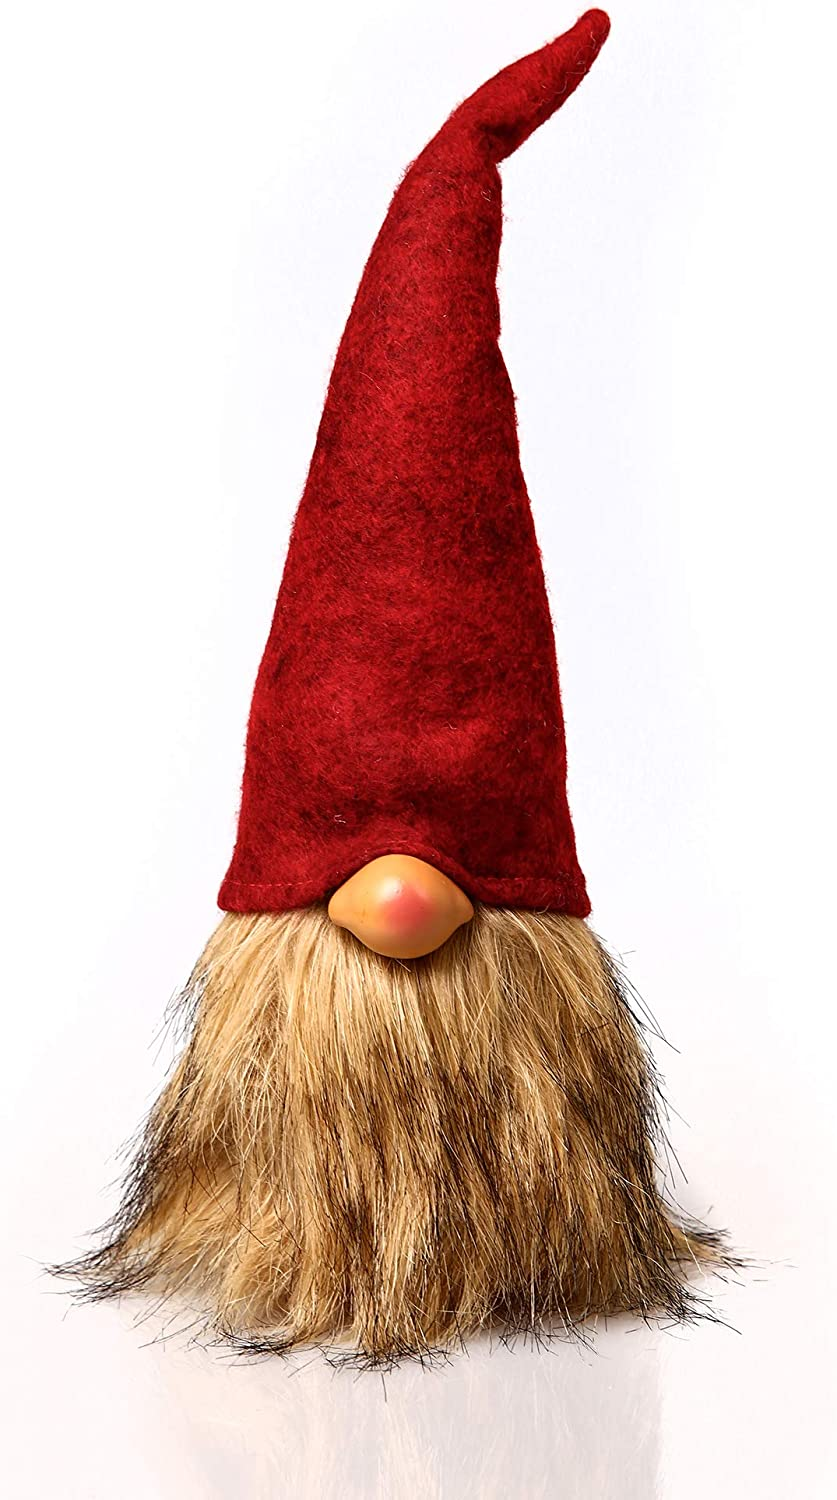 ITOMTE Handmade Swedish Gnome, Scandinavian Tomte, Yule Santa Nisse, Nordic Figurine, Plush Elf Toy, Home Decor, Winter Table Ornament, Christmas Decorations, Holiday Presents - 12 Inches, Red